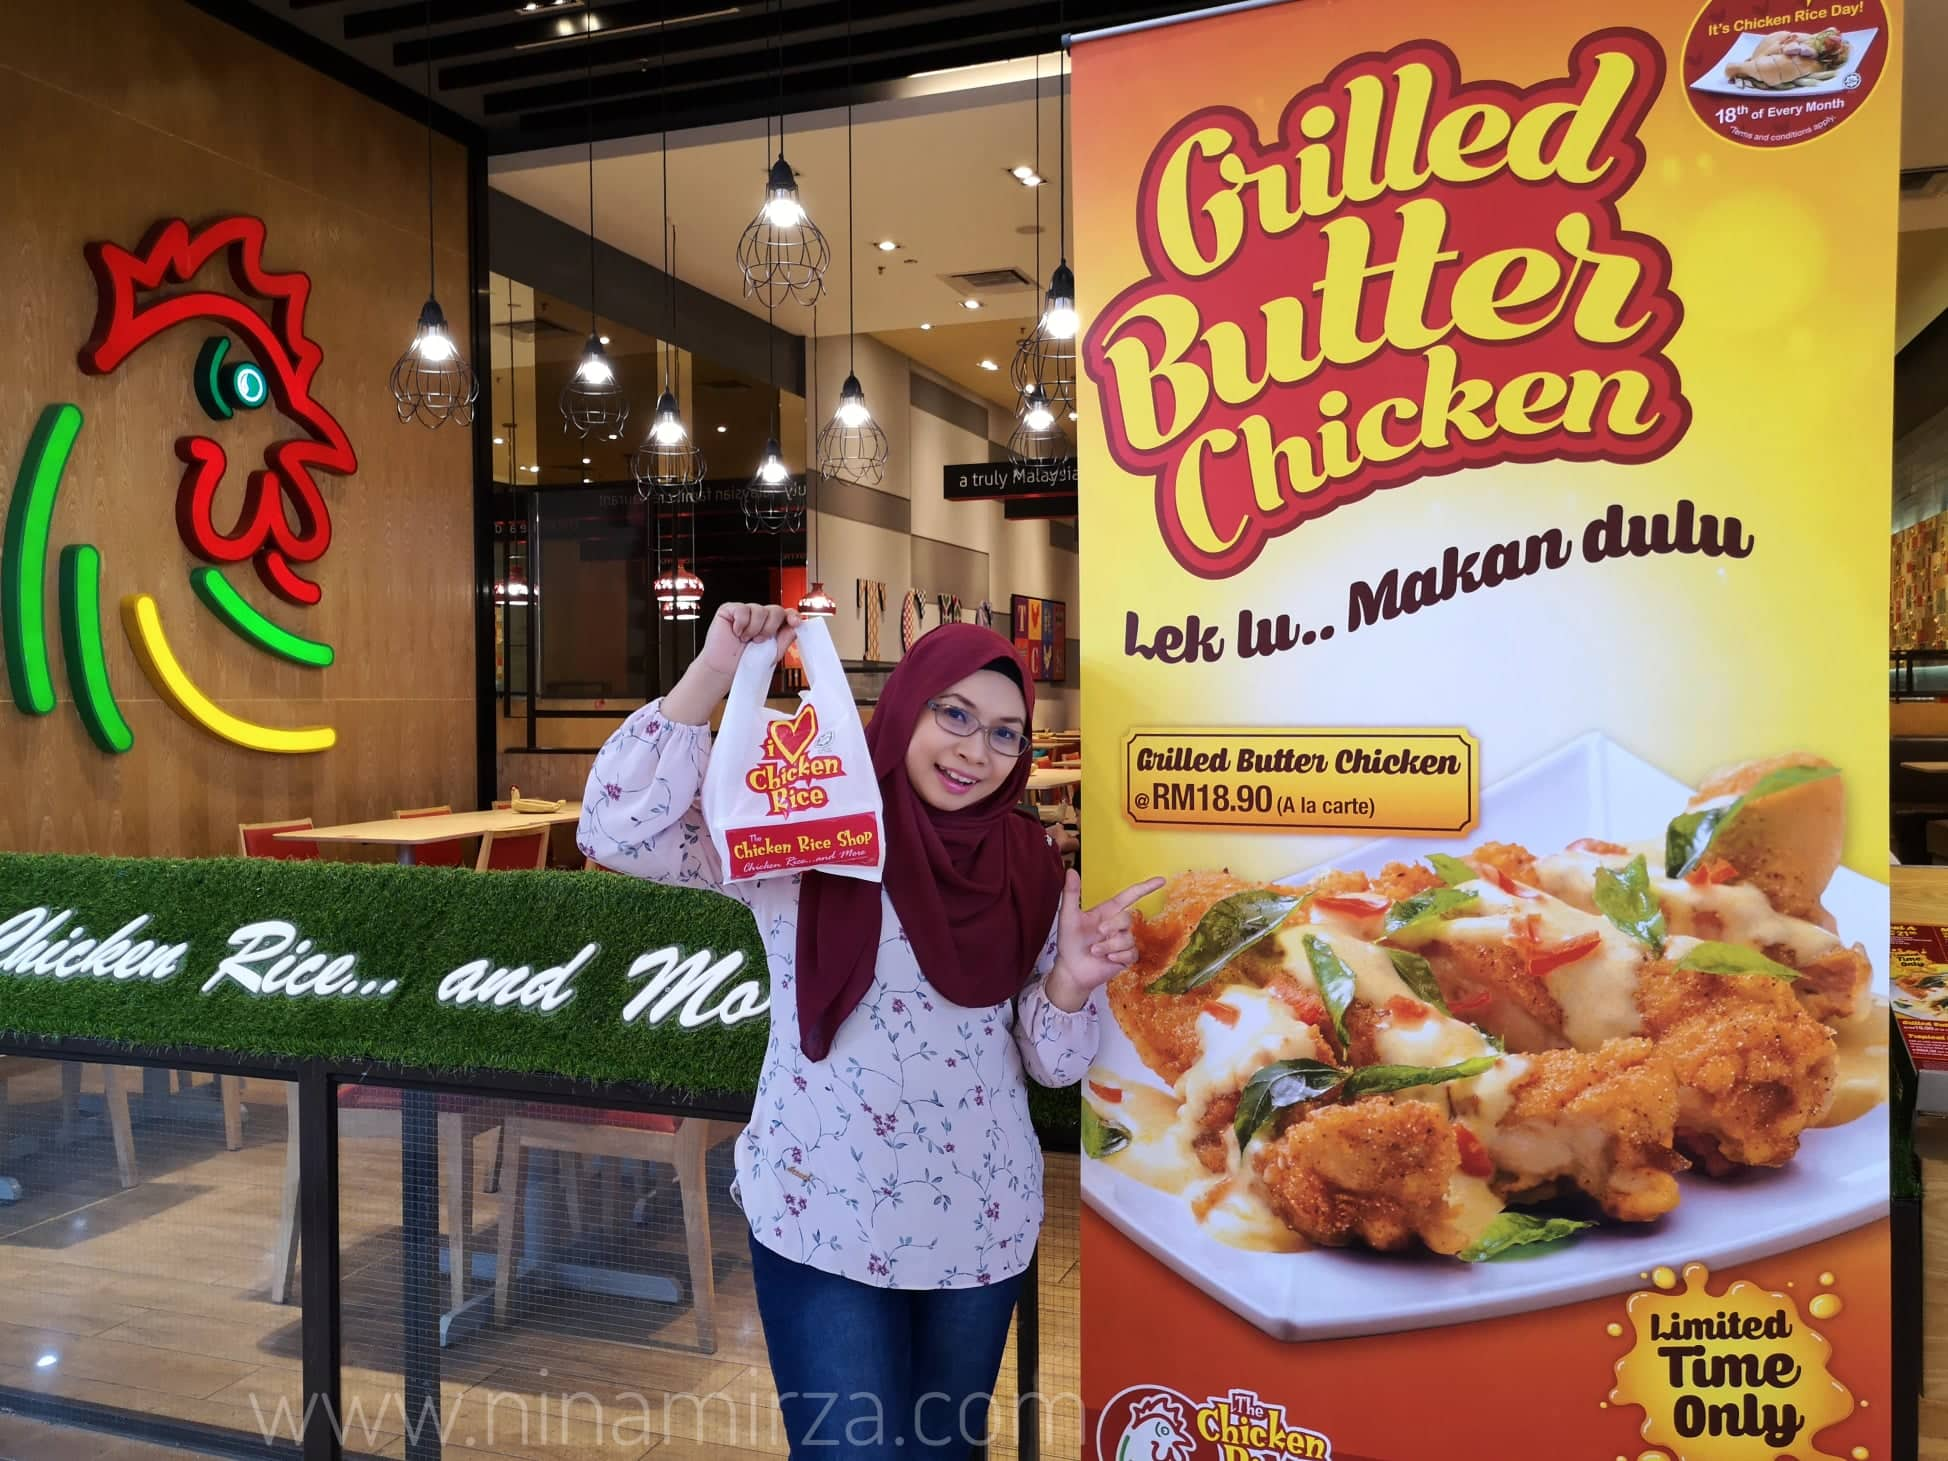 Grilled Butter Chicken TCRS Ala Carte RM18.90